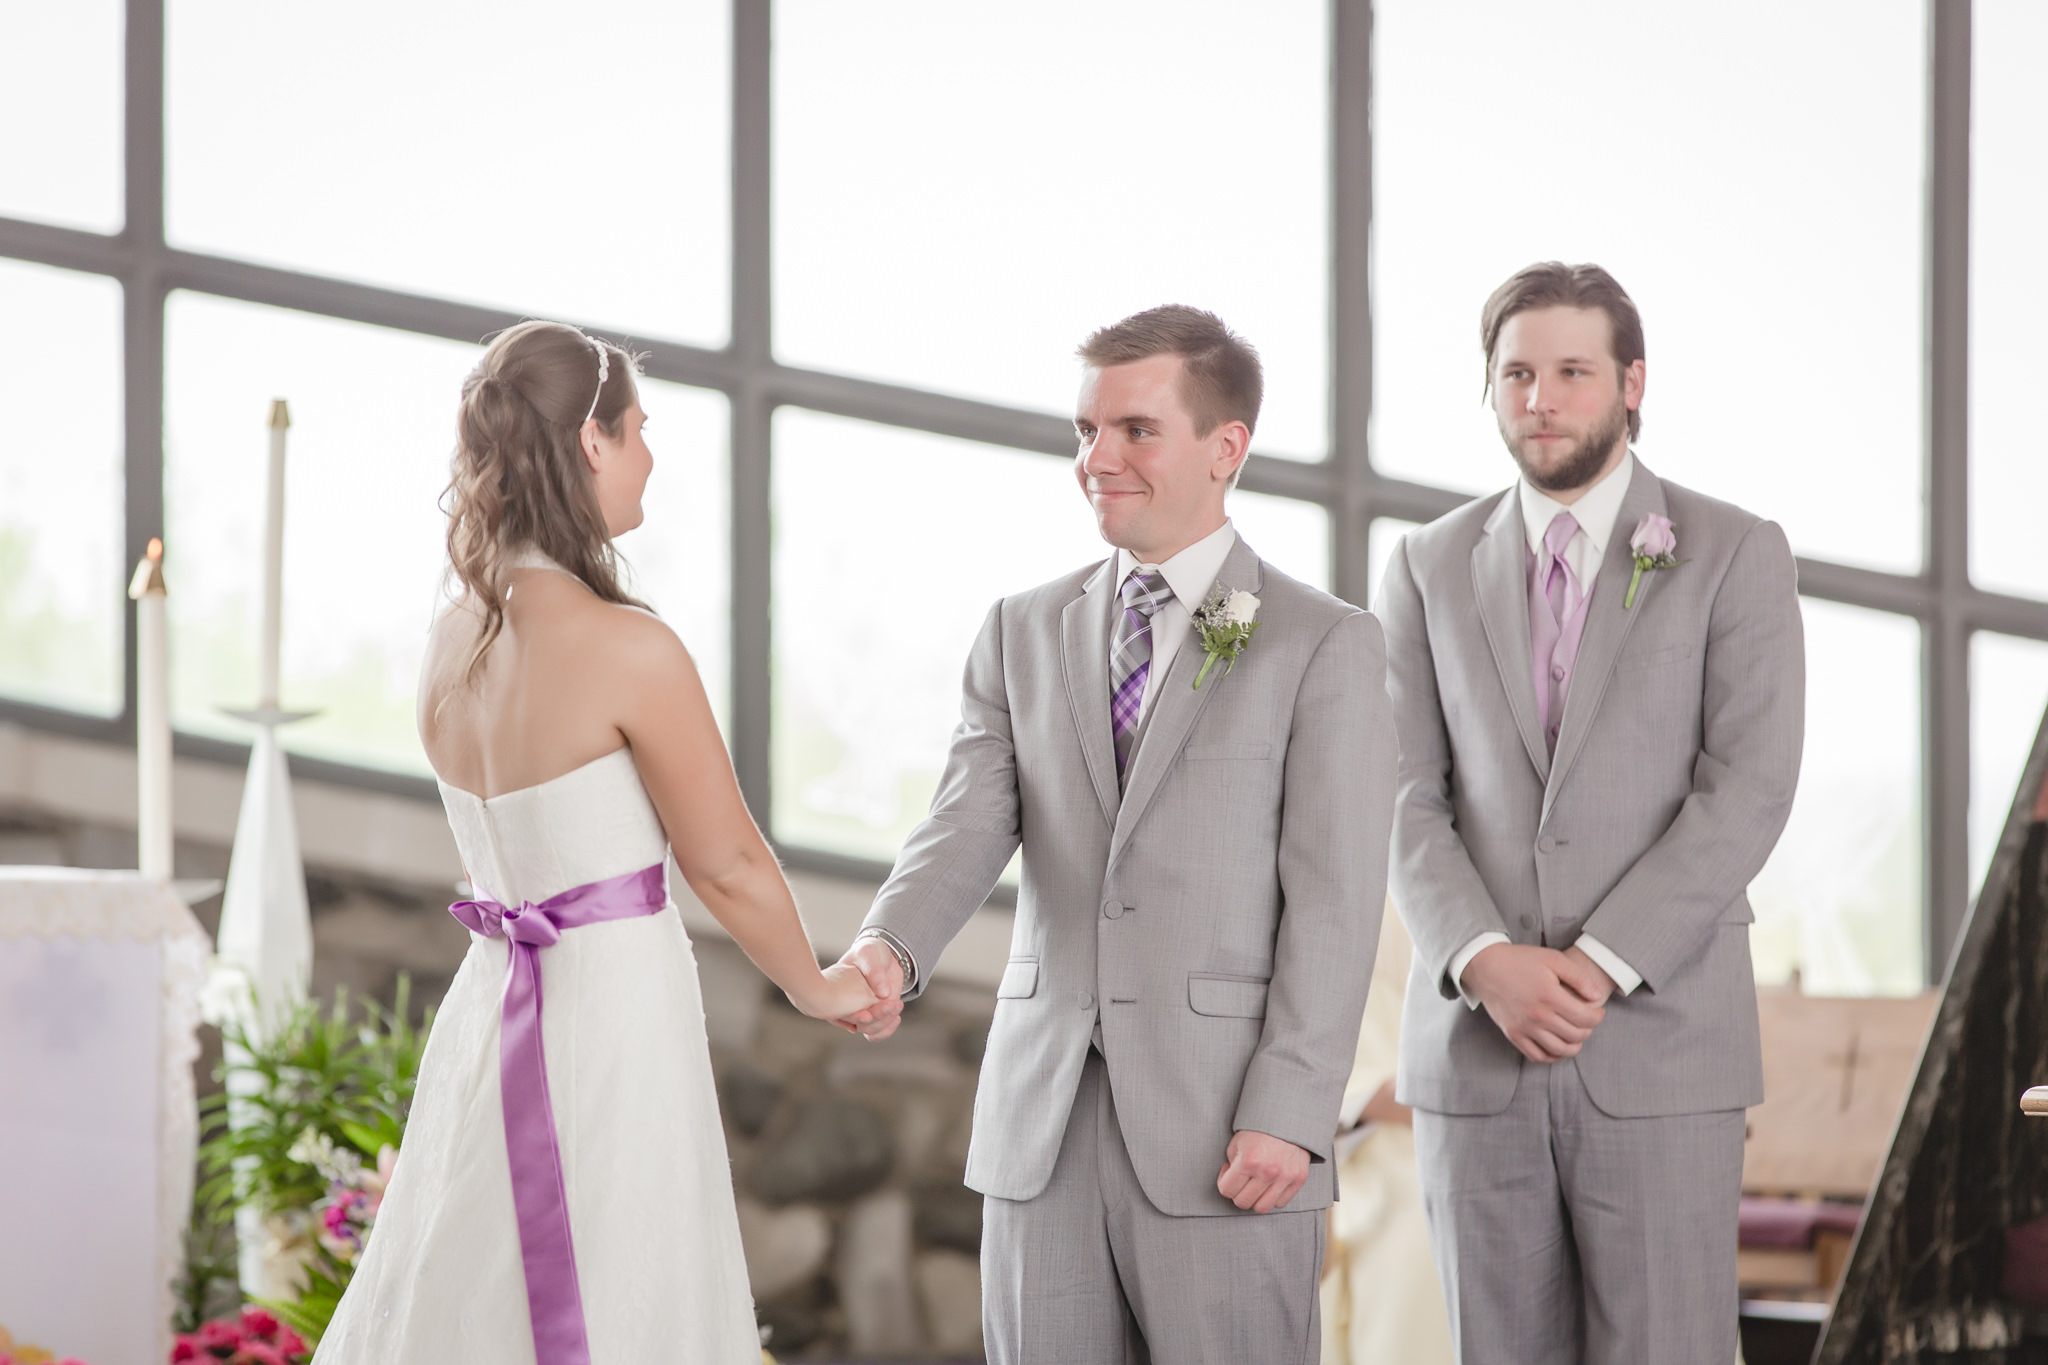 Bride and groom exchange vows at wedding ceremony at St. Malachy Catholic Church